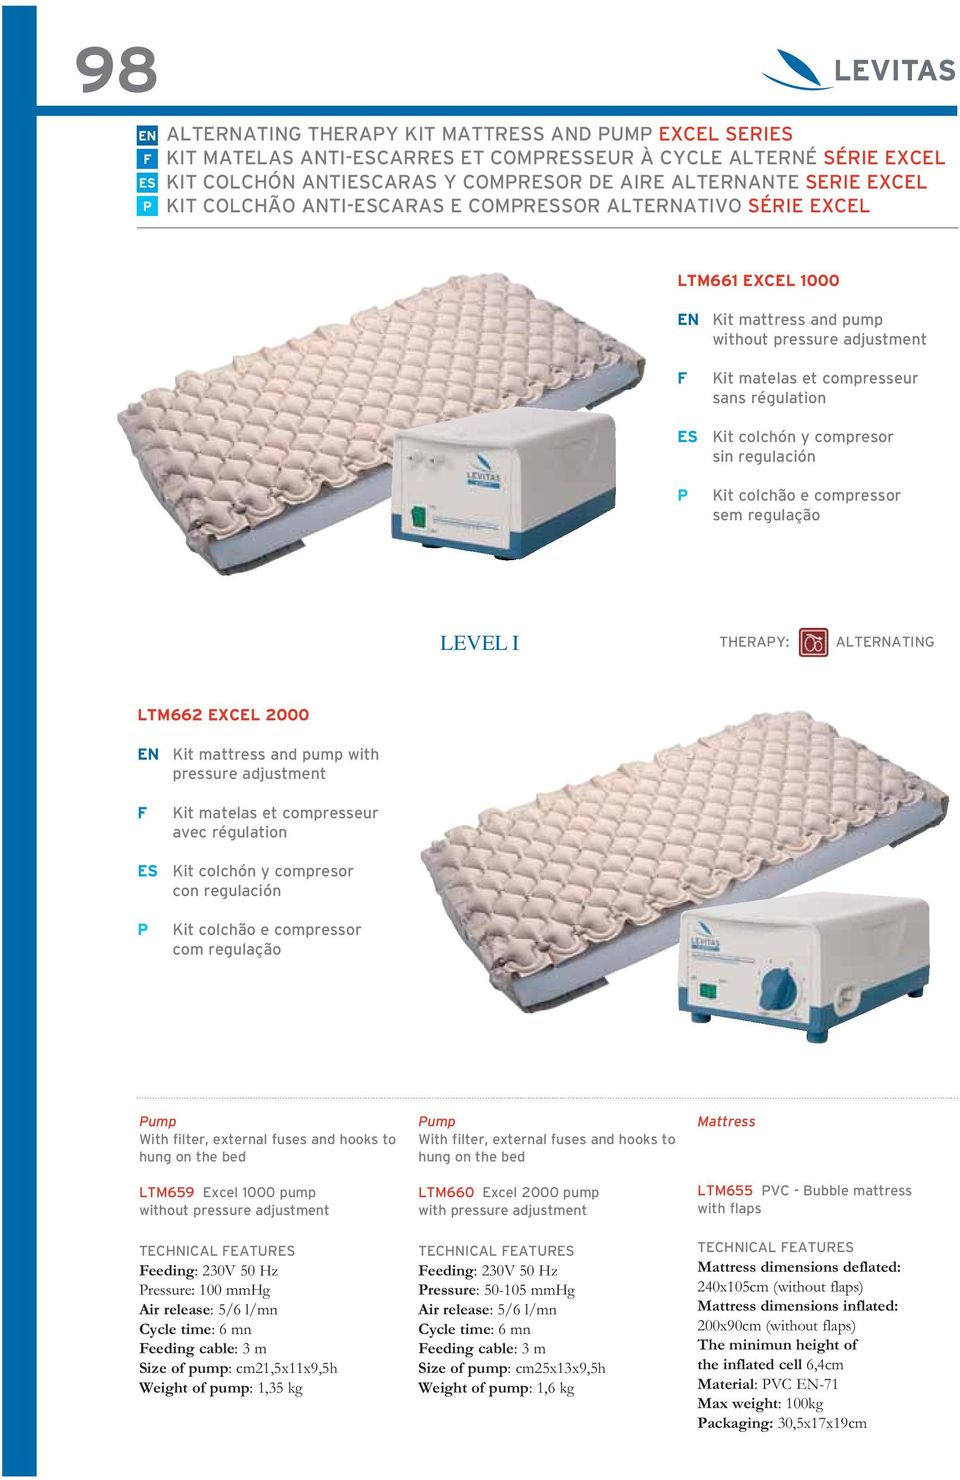 cable: 3 m Size of pump: cm25x13x9,5h Weight of pump: 1,6 kg Mattress dimensions deflated: 240x105cm (without flaps) Mattress